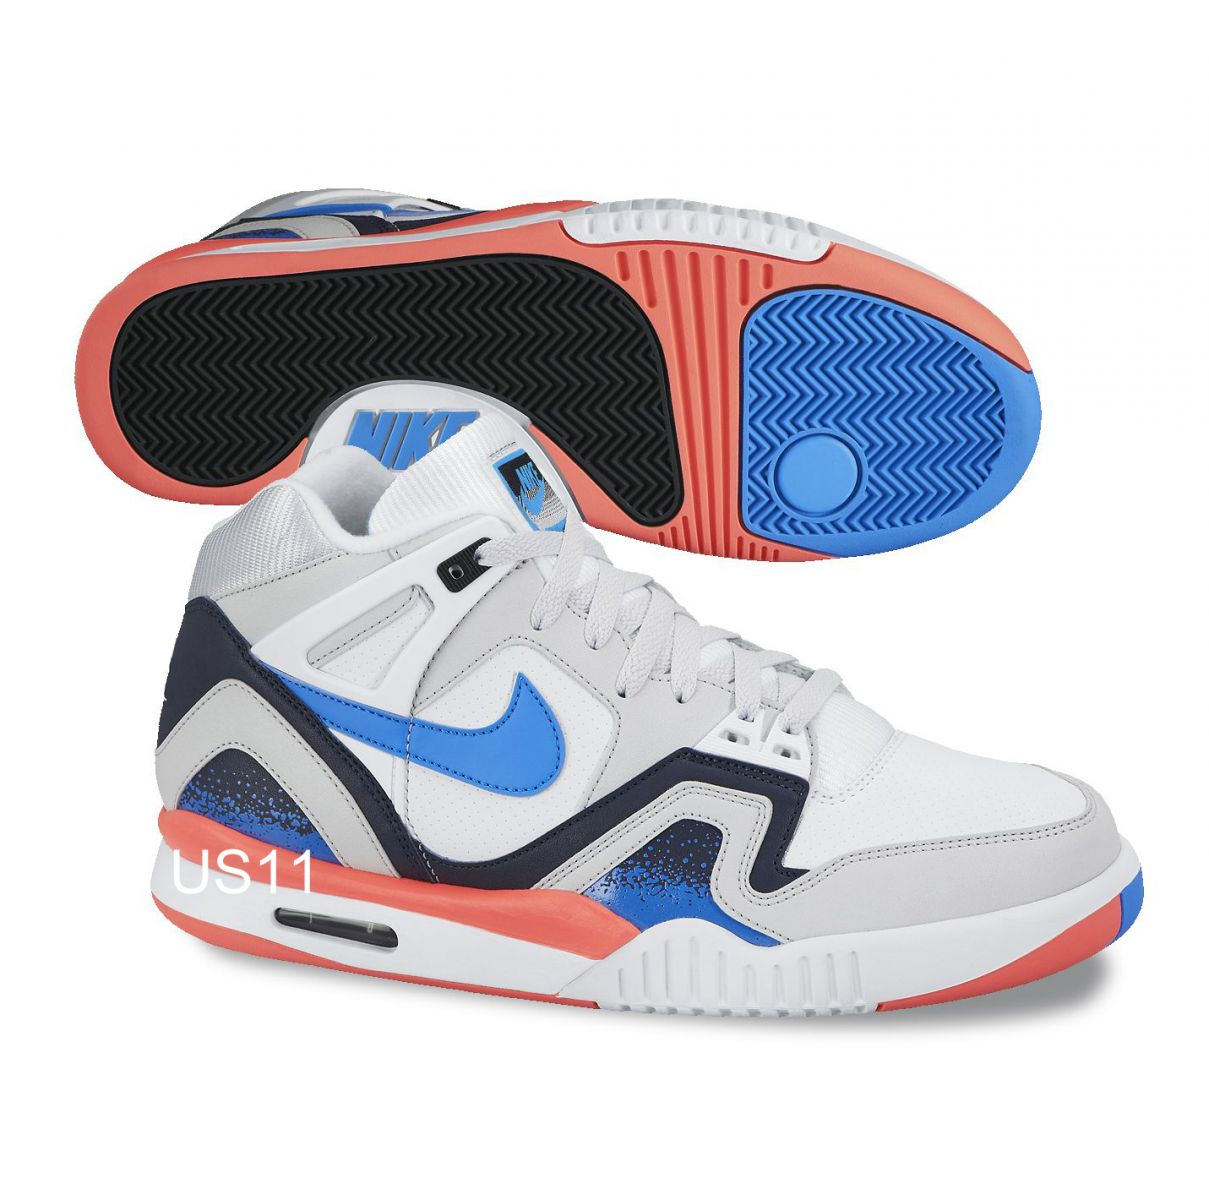 Nike Air Tech Challenge II - White Blue-Red  5c42d6aba9